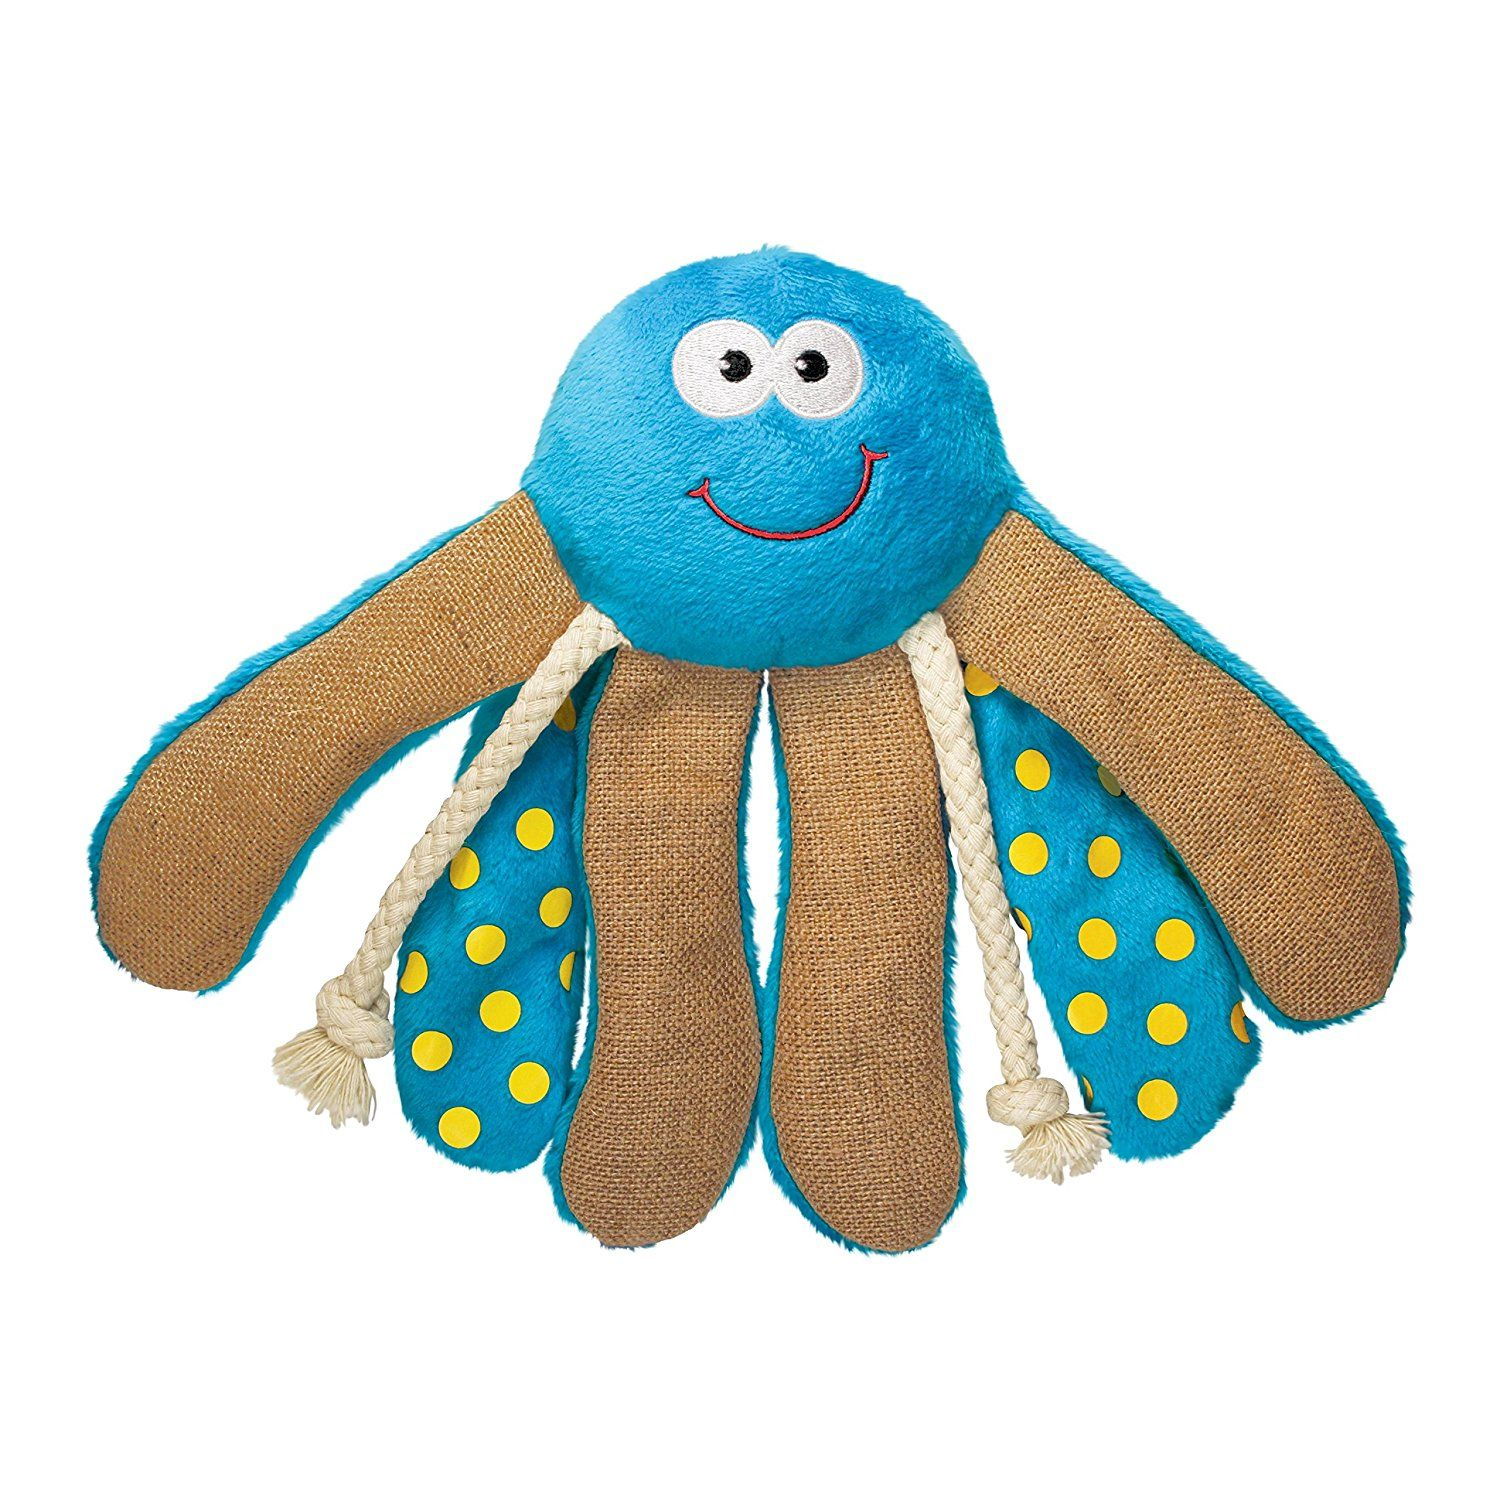 Kong Giggles Octopus Dog Toy Read More Reviews Of The Product By